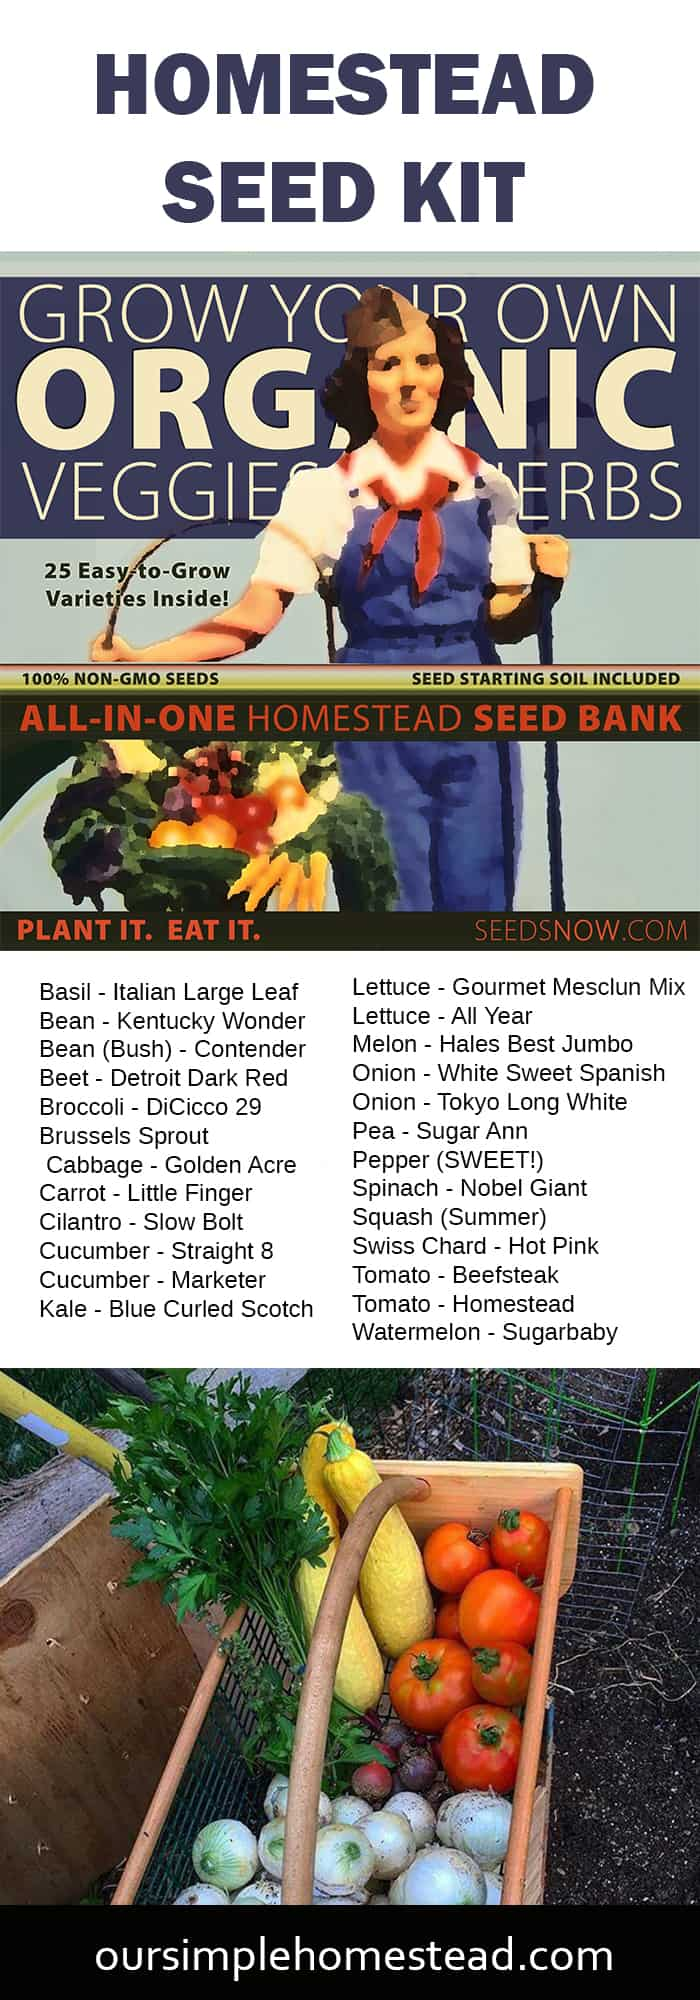 homestead seed kit